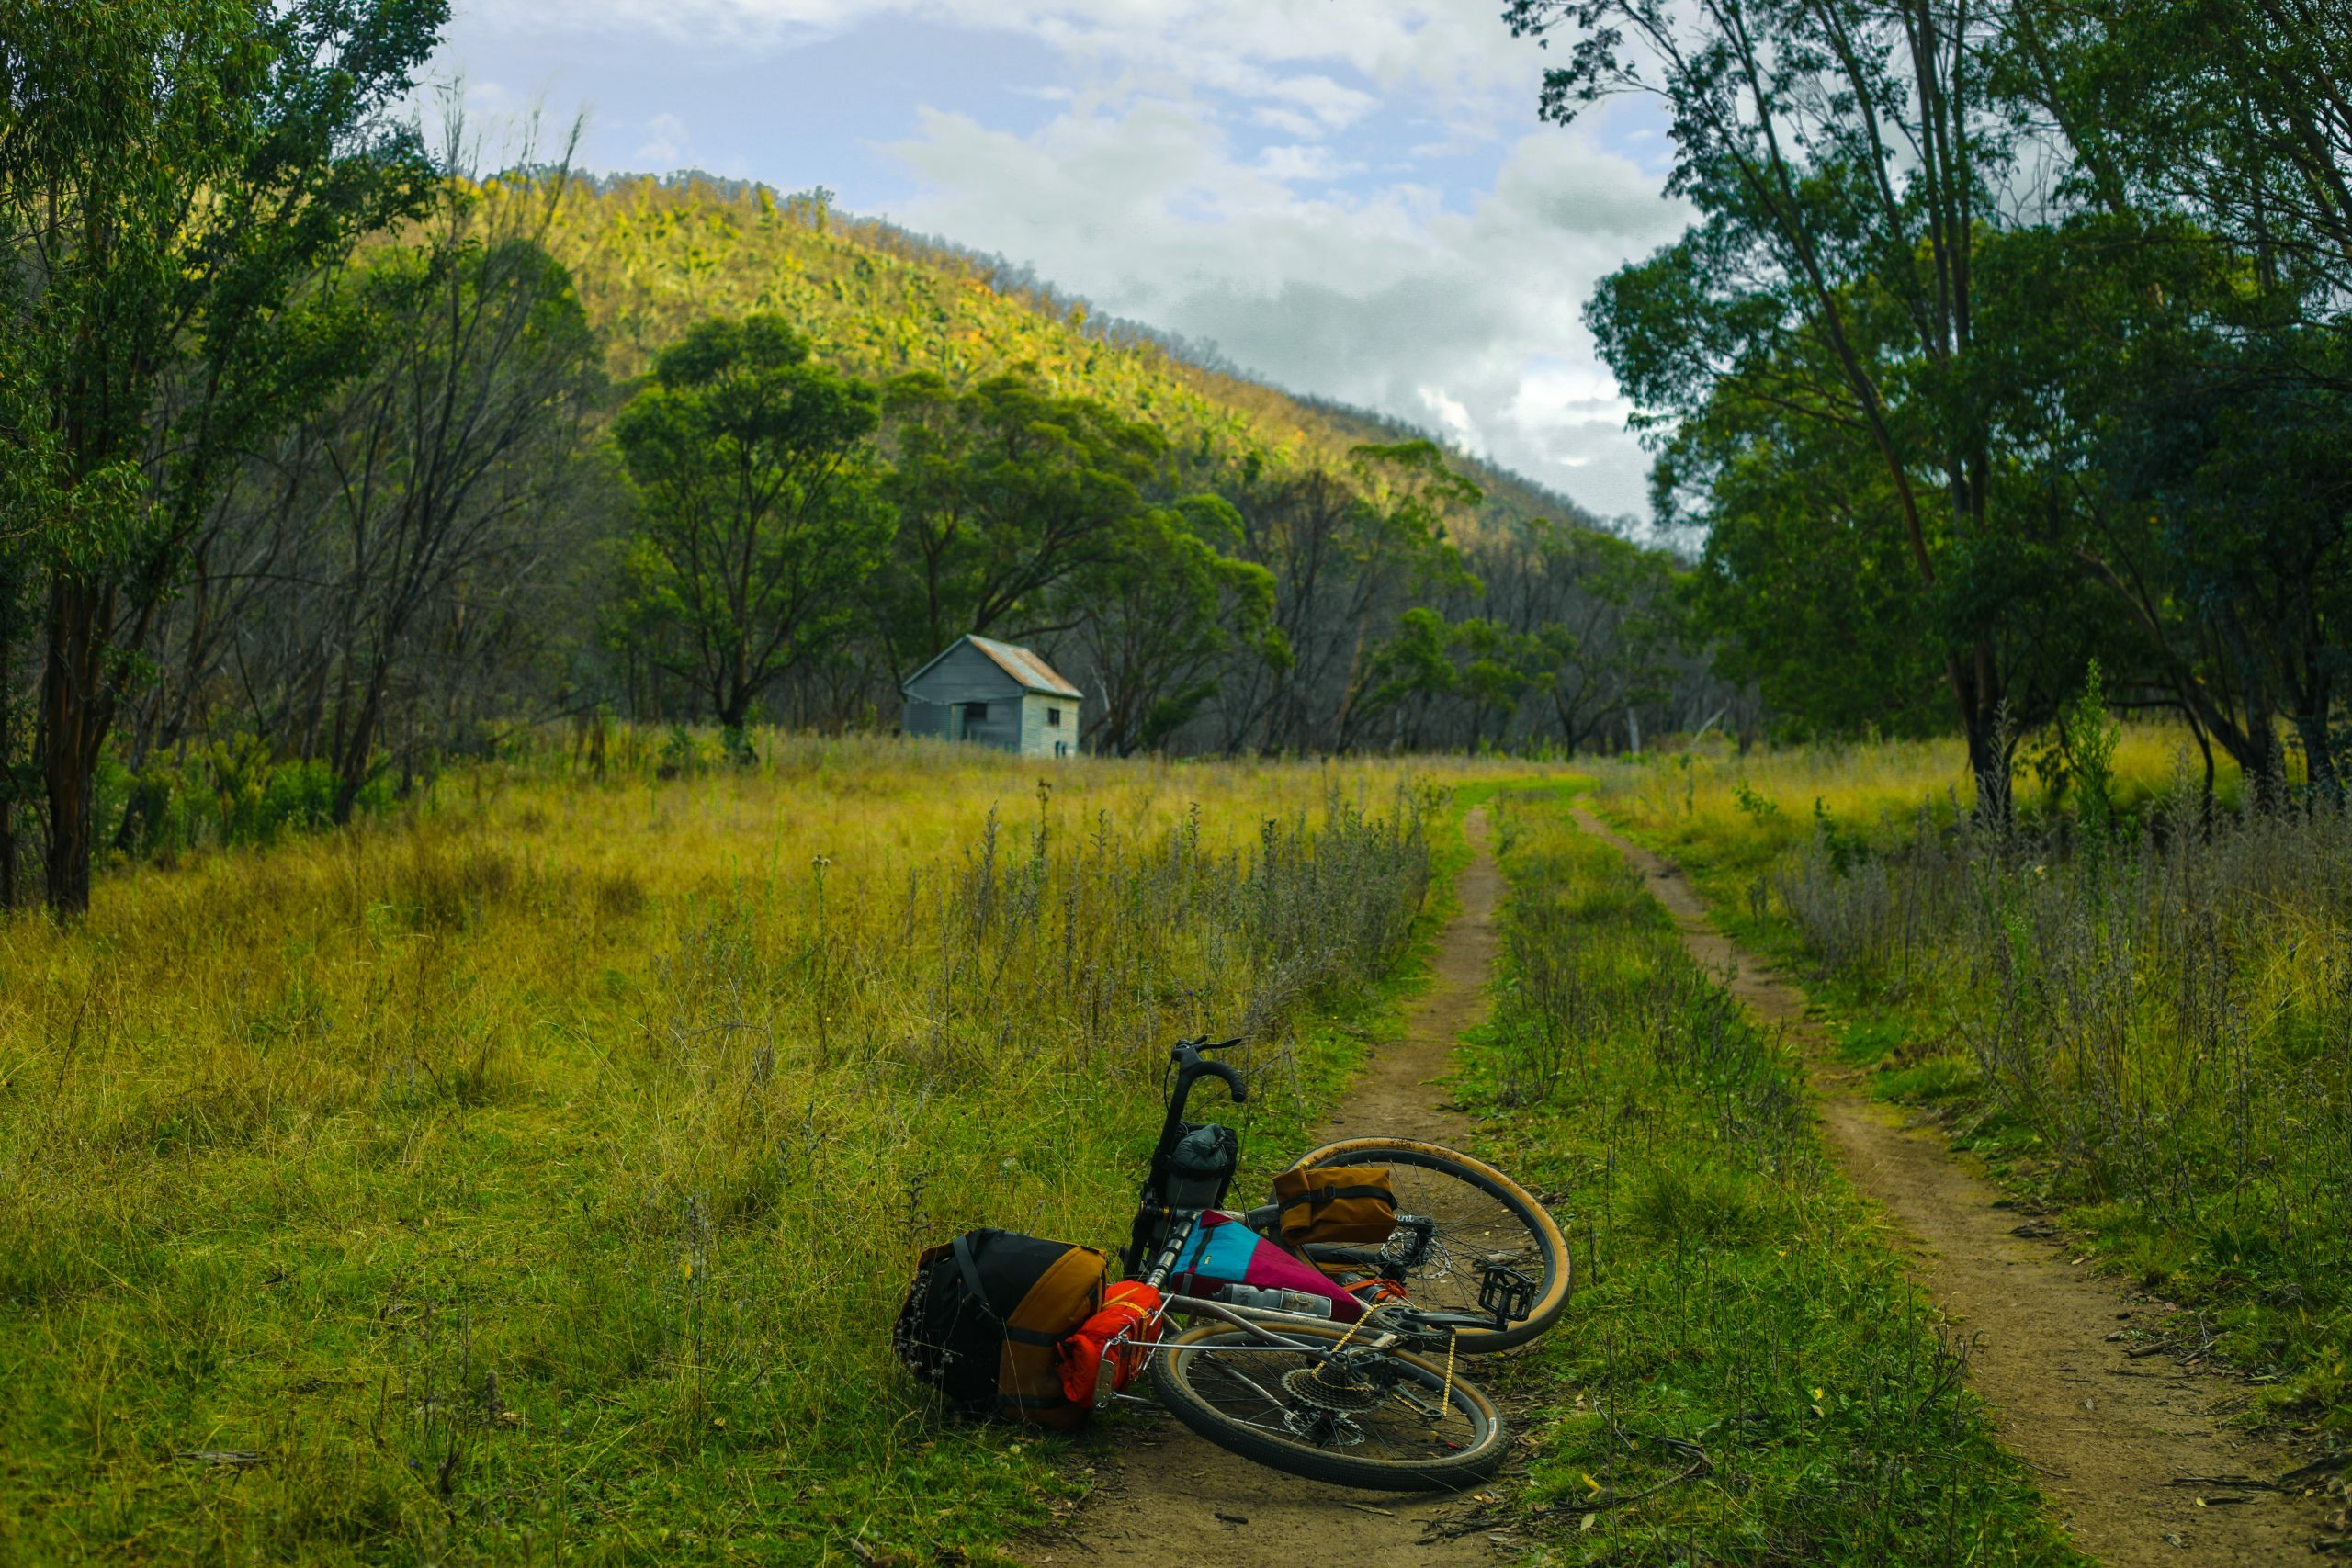 Arriving at Horse Gully Hut for the Swift Campout